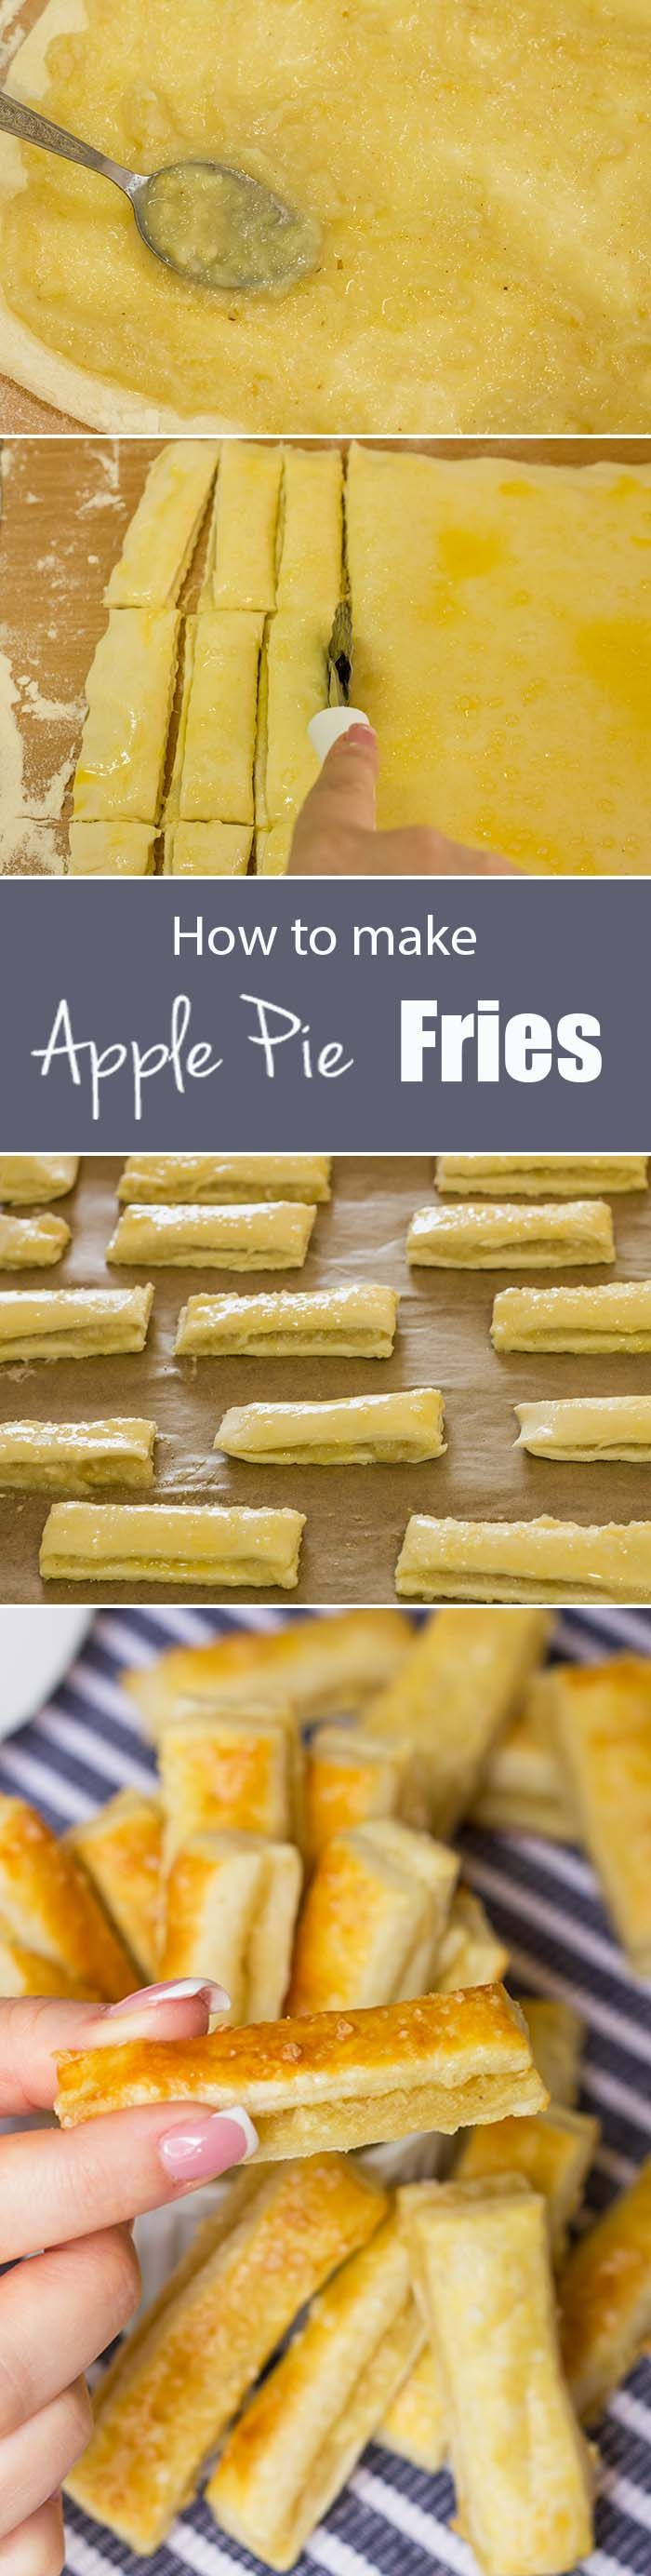 Recipe at shoes and Pies Apple Apple Pie Fries  air Apple cost Fries Fries Pie Apple   savers